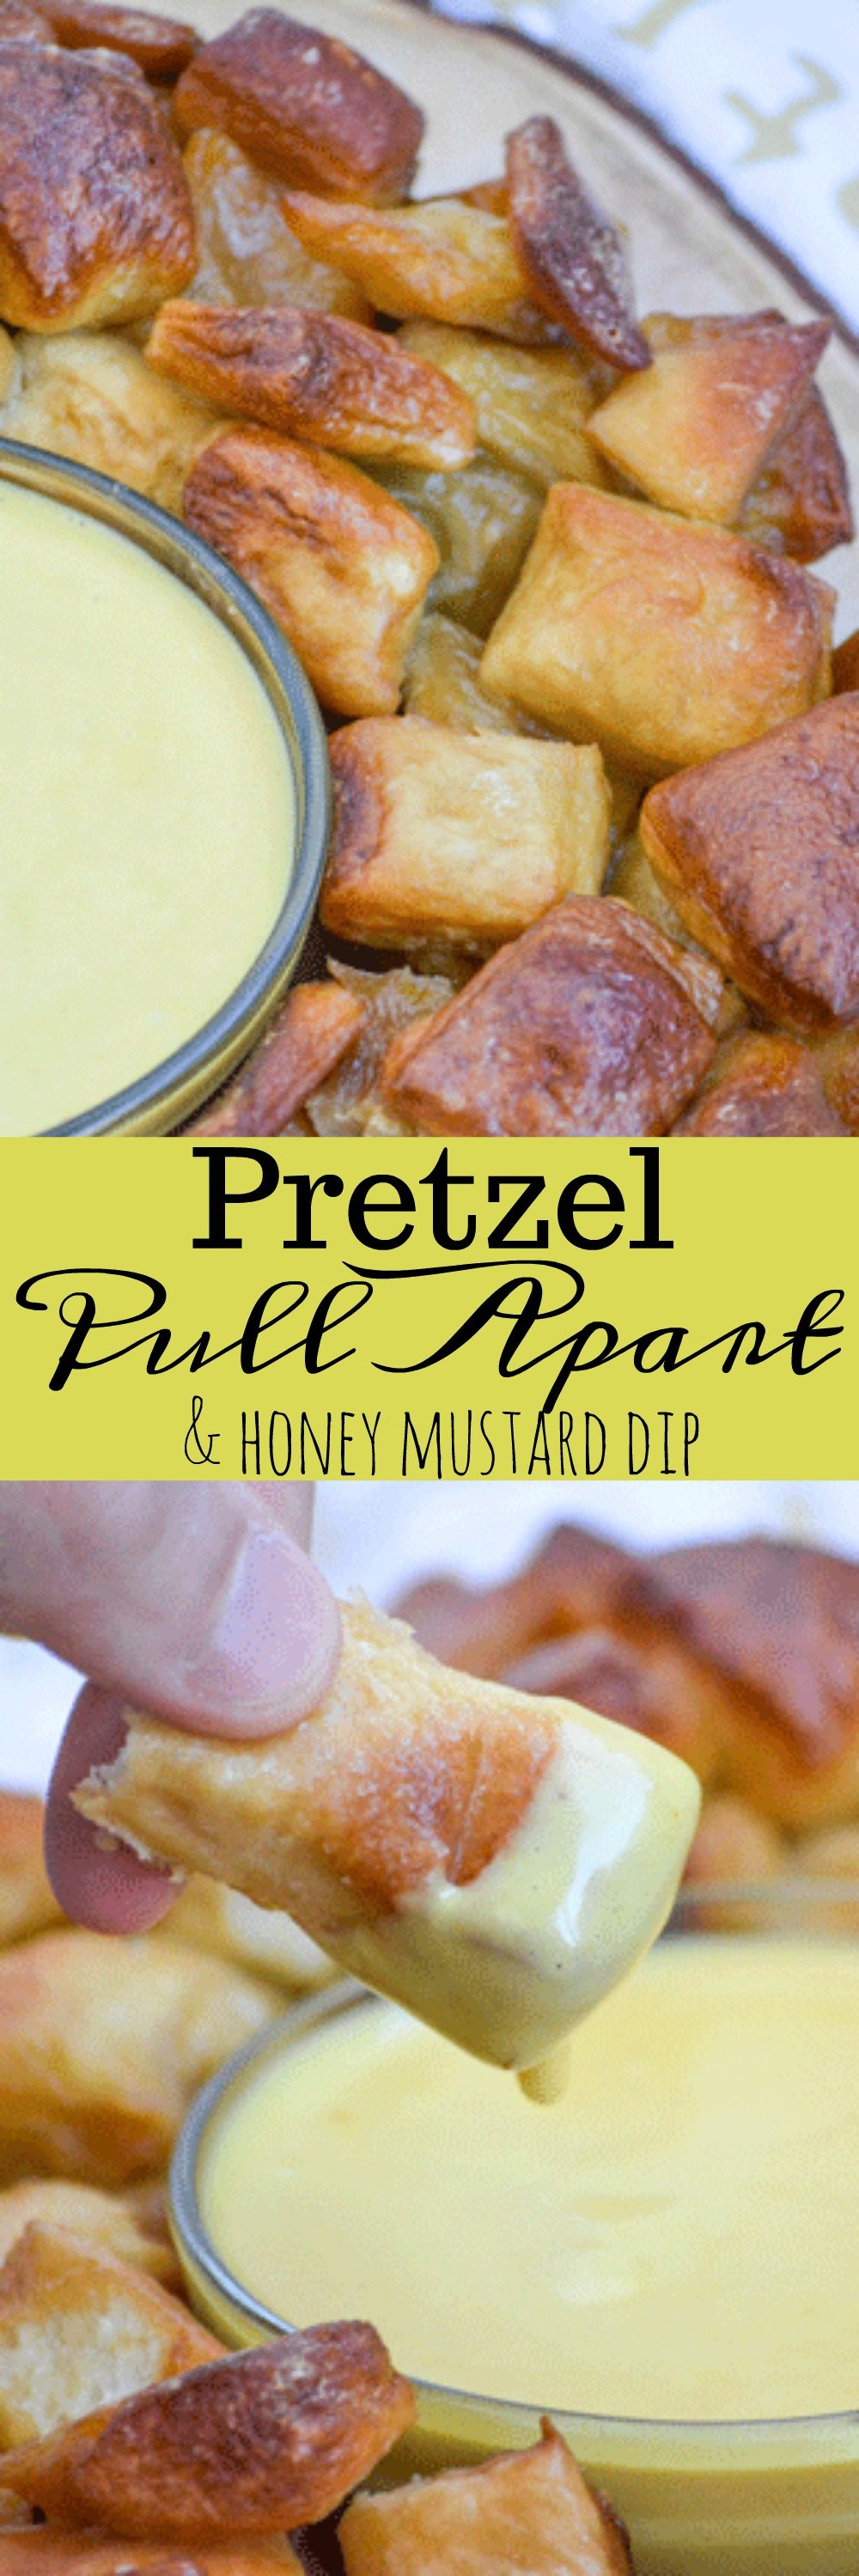 Football can be such a hot topic, it really can see a house divided. Unite everyone behind one spectacular dish with this Pull Apart Pretzel Bread & Honey Mustard Dip. Buttery, salted, golden brown pretzel bites are easily pulled apart and dipped in a lightly spiced honey mustard for an awesome appetizer every one will want to get behind.